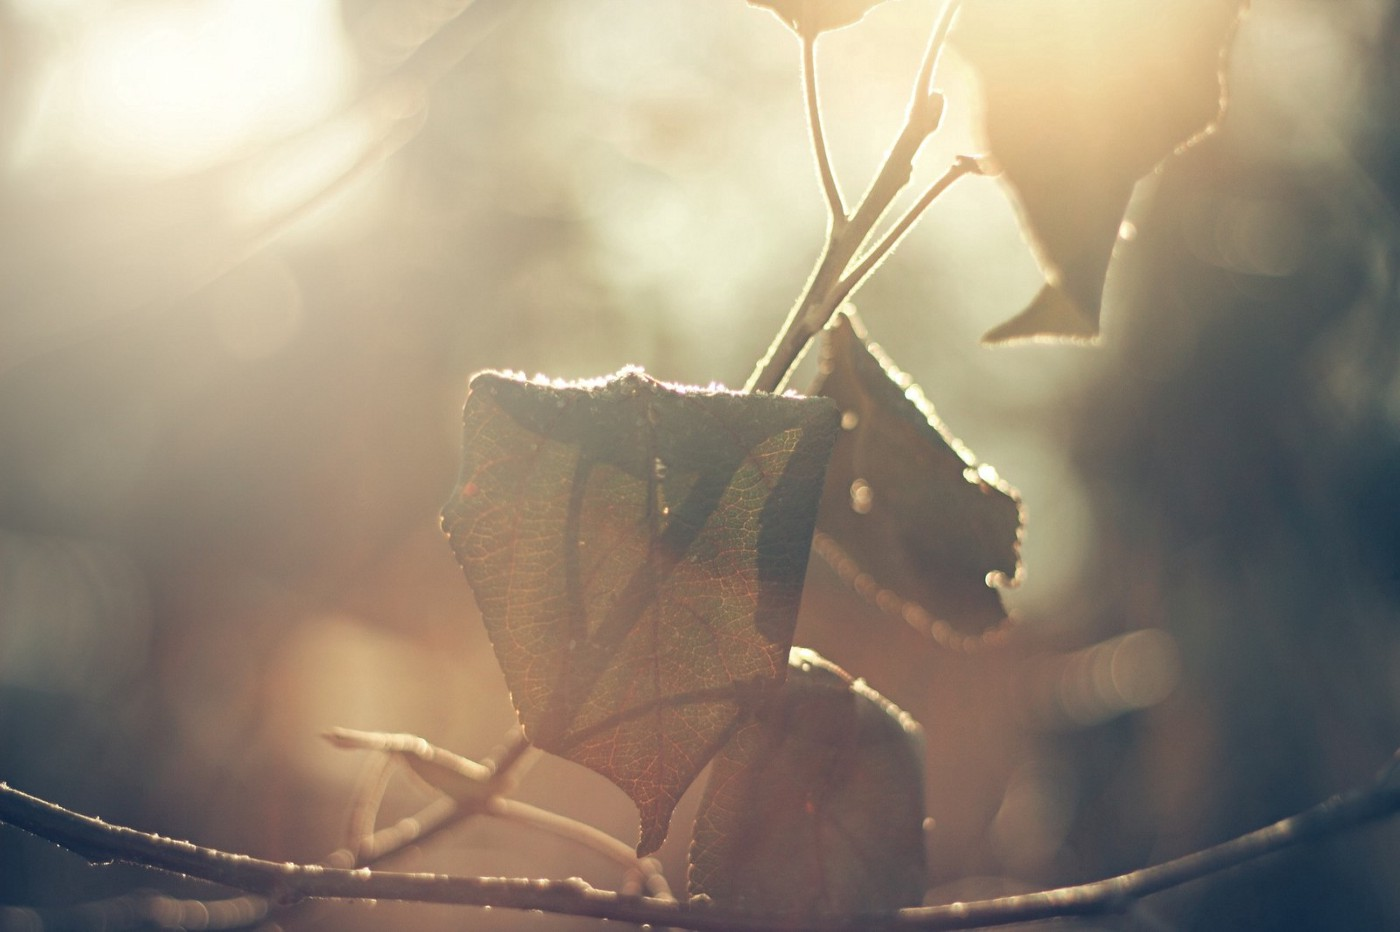 aesthetic brown leaves under the halo of the sunlight